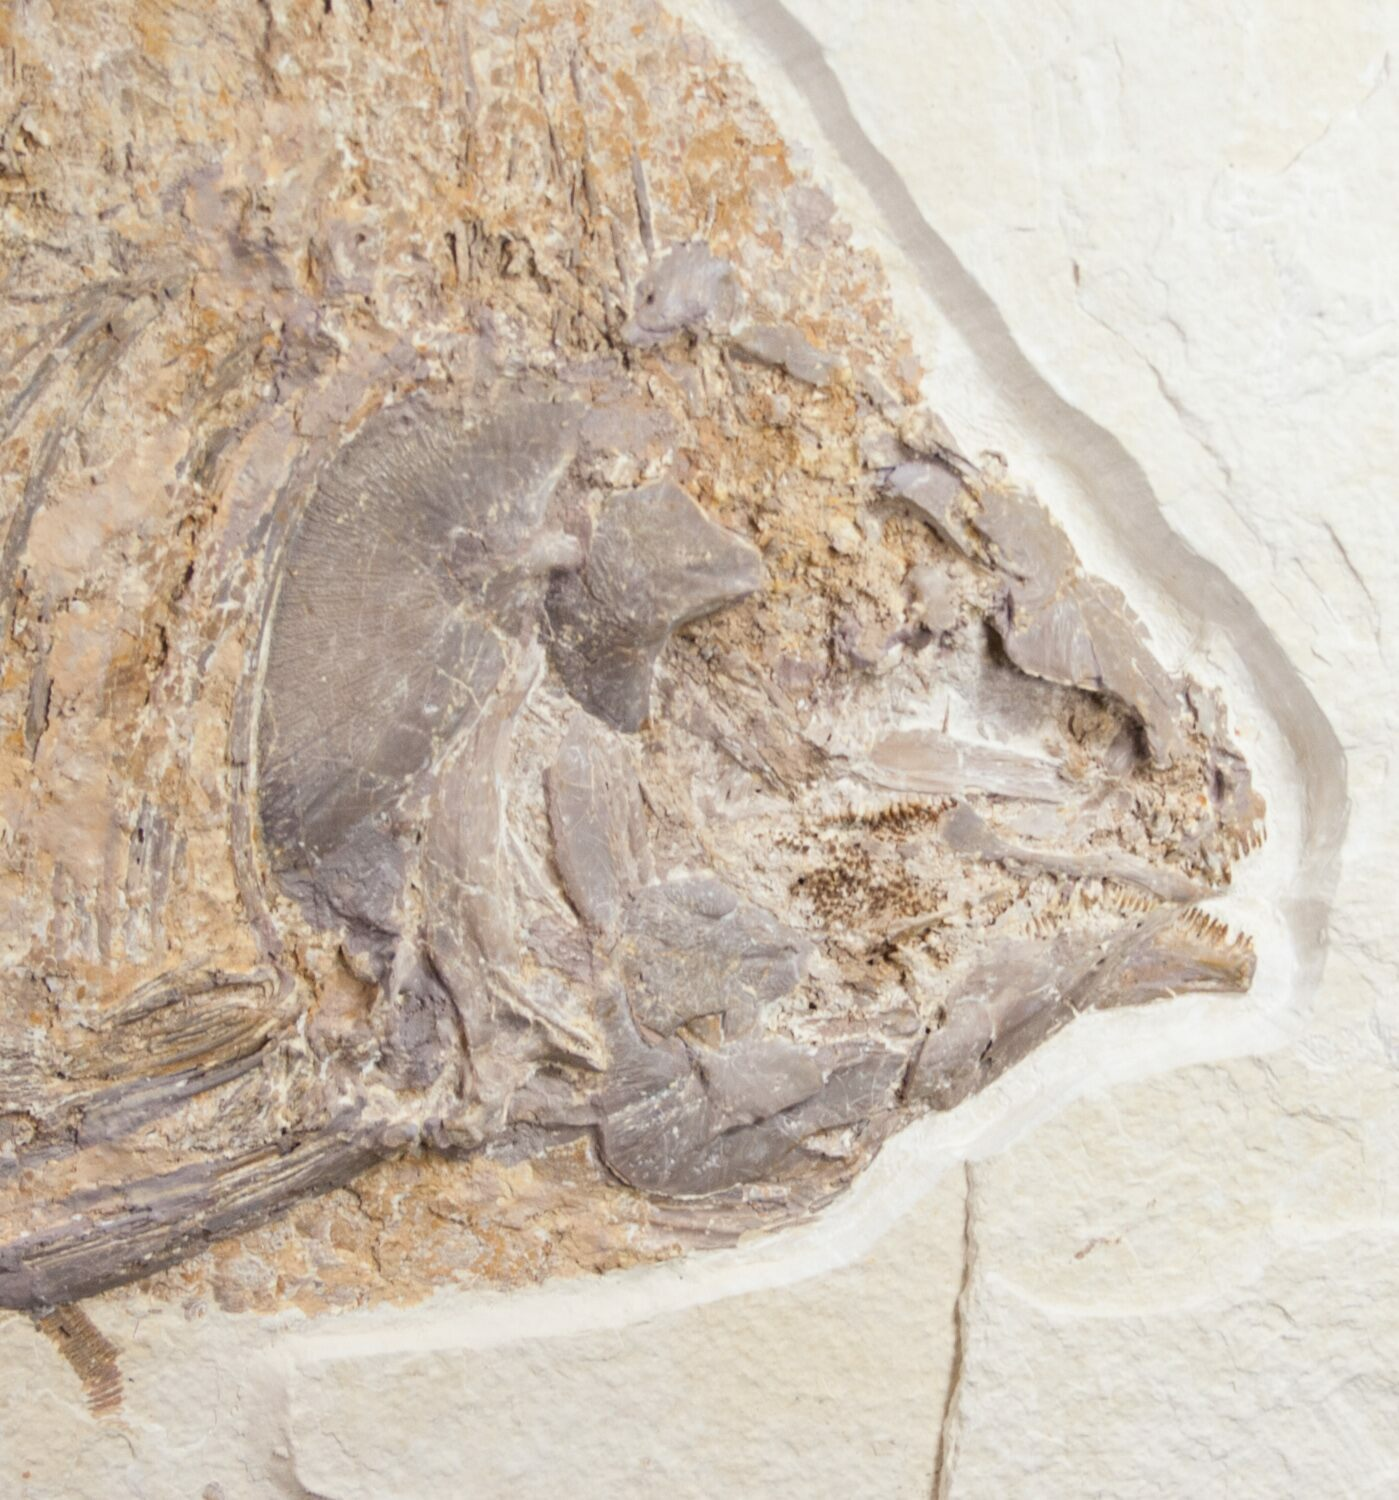 13 5 phareodus fossil fish for sale 10814 for Fish fossils for sale